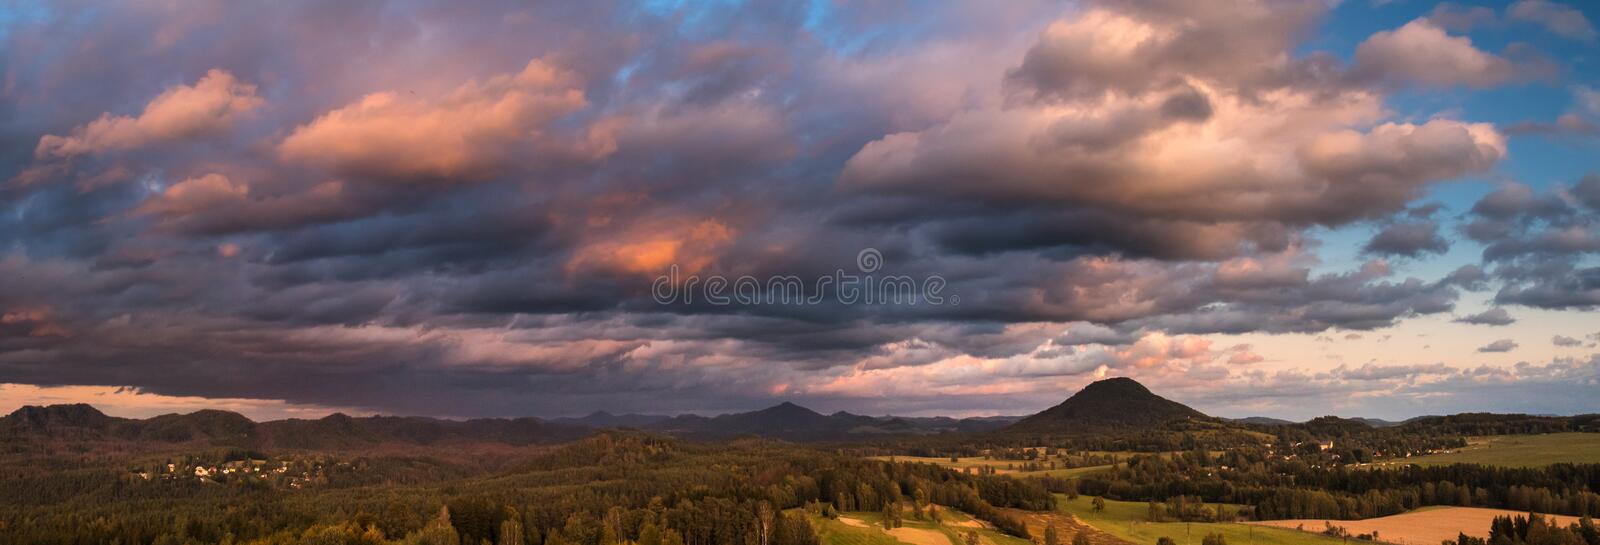 Autumn landscape at sunset - mountains, forests and dramatic clouds illuminated by the setting sun stock images